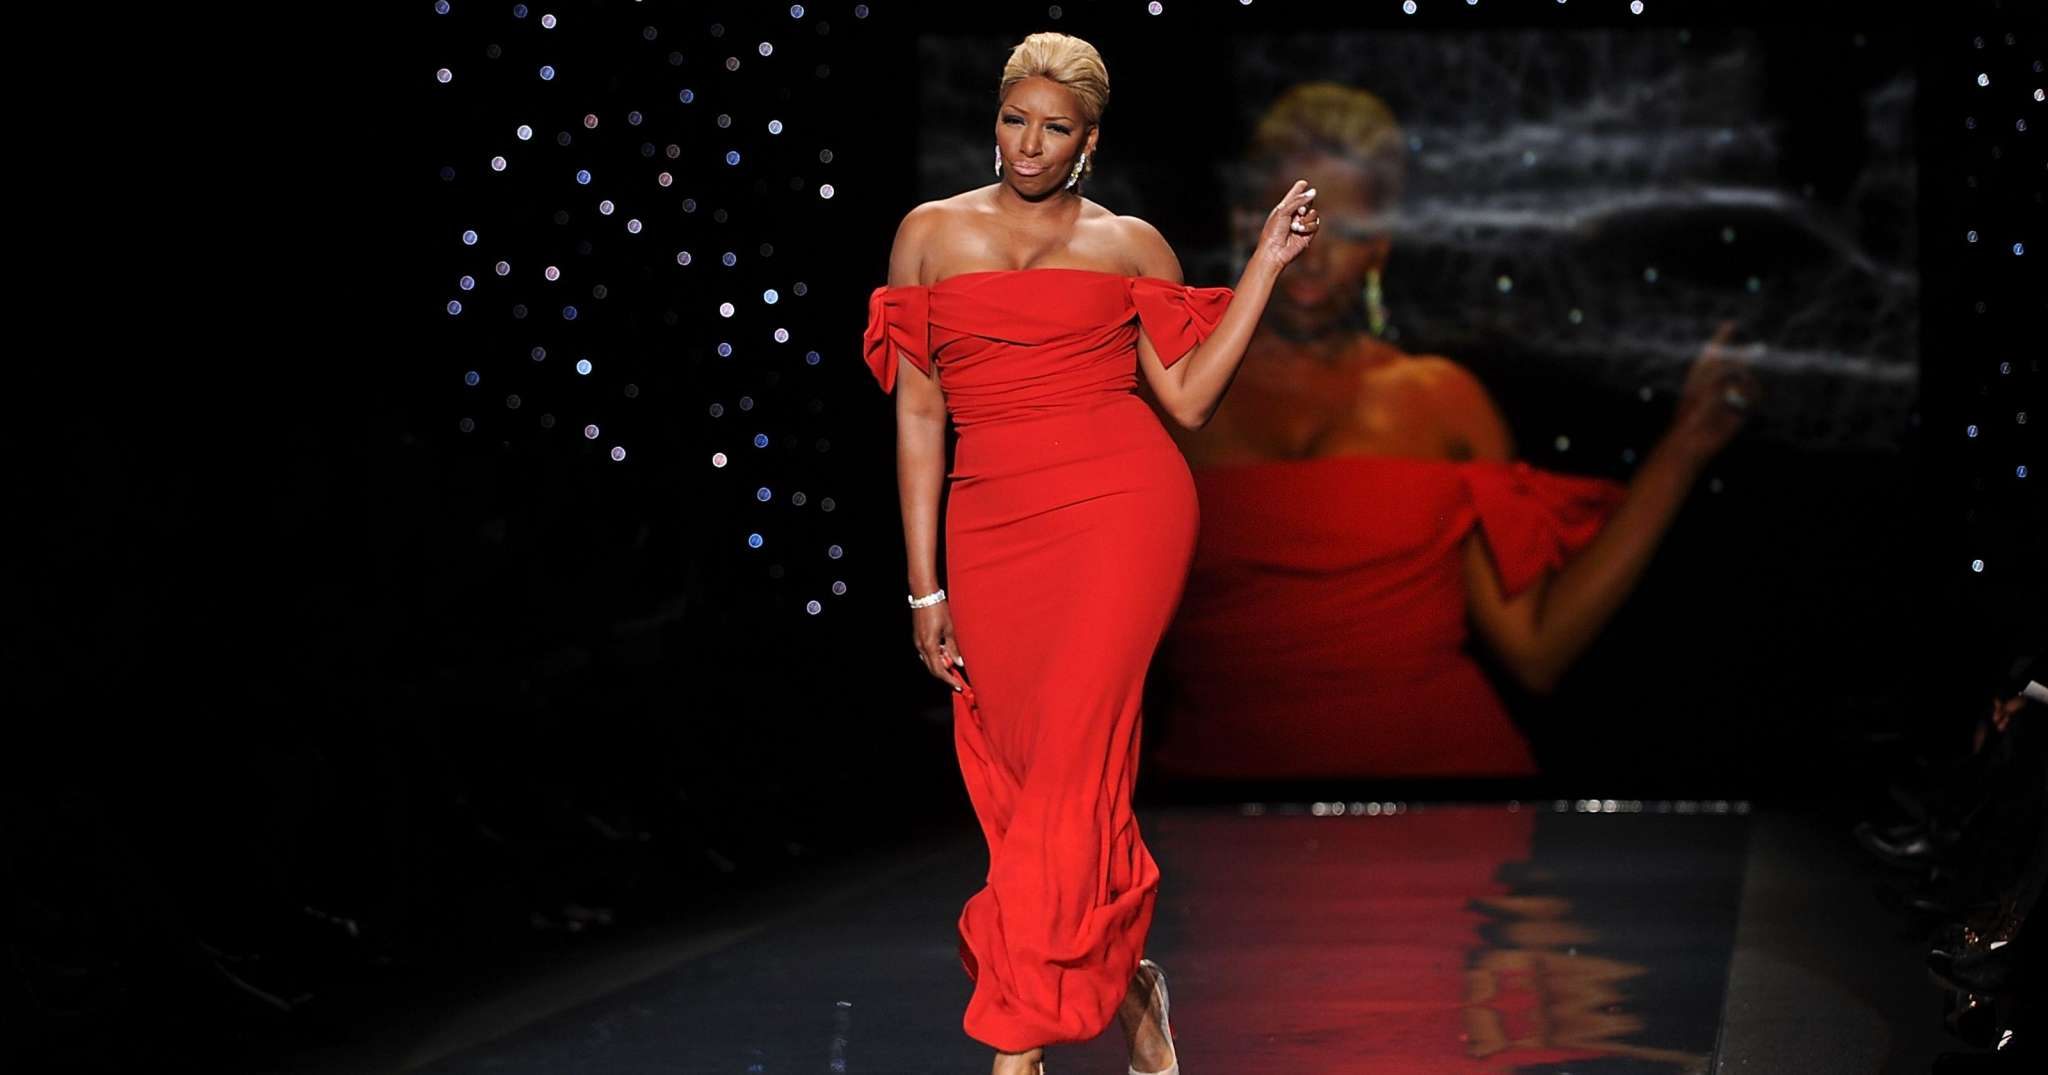 """nene-leakes-looks-glamorous-in-her-latest-photos-fans-say-she-should-host-wendy-williams-show"""